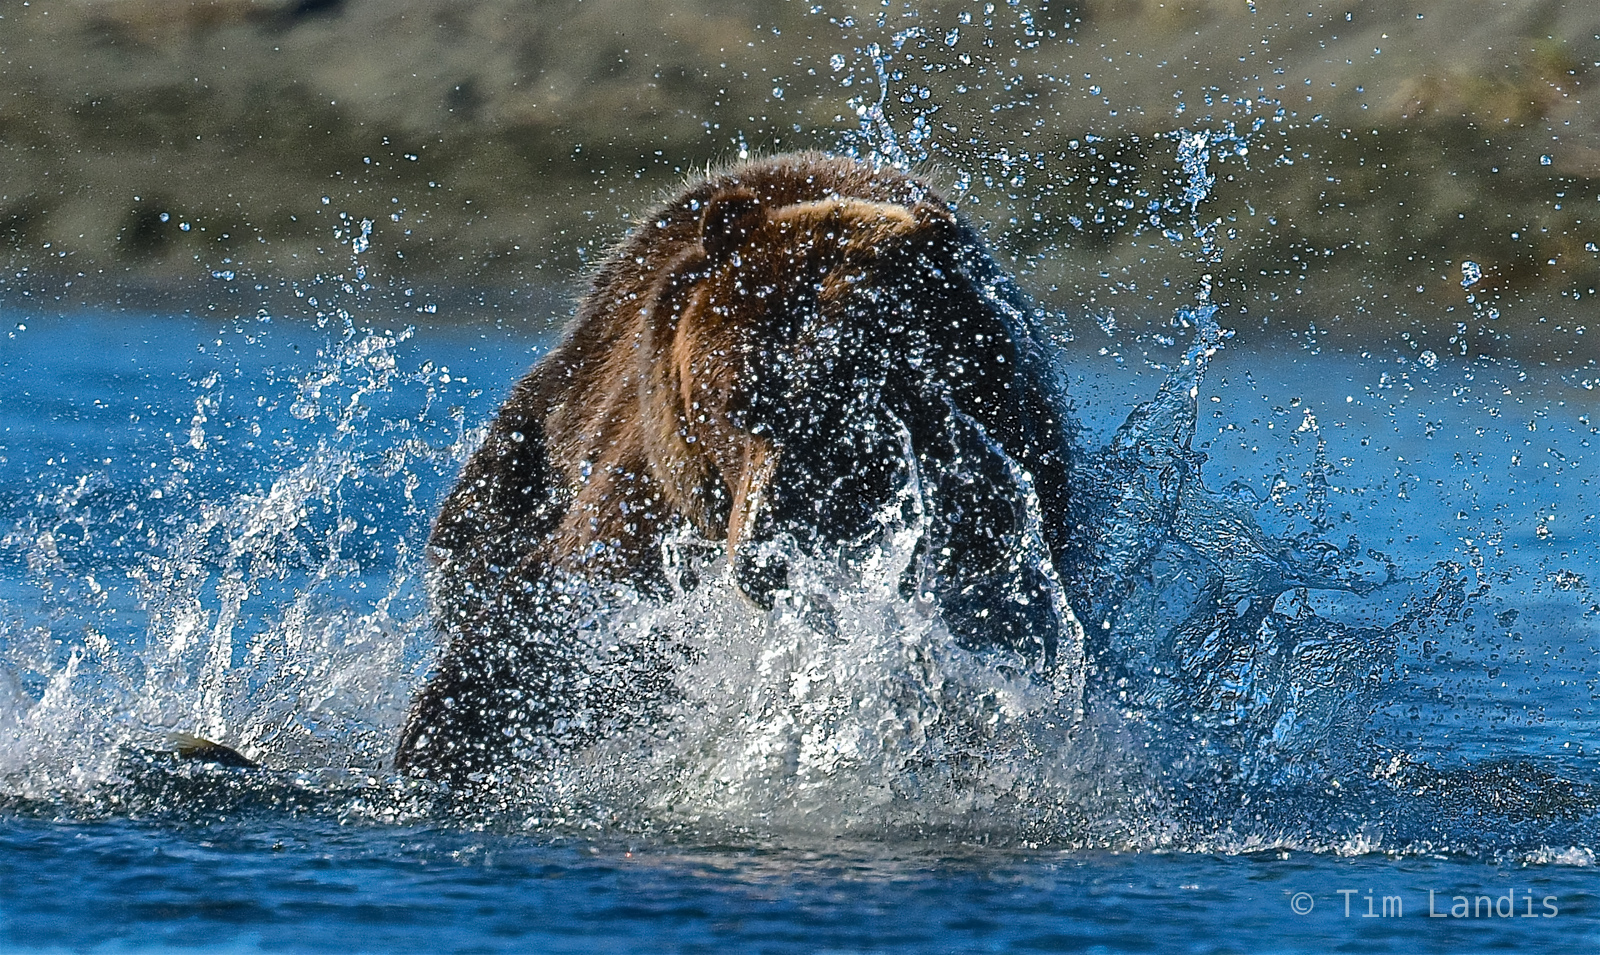 Fattening up for the winter, grizzly fishing, grizzly pouncing, grizzly splashing, salmon, the salmon slayer, photo